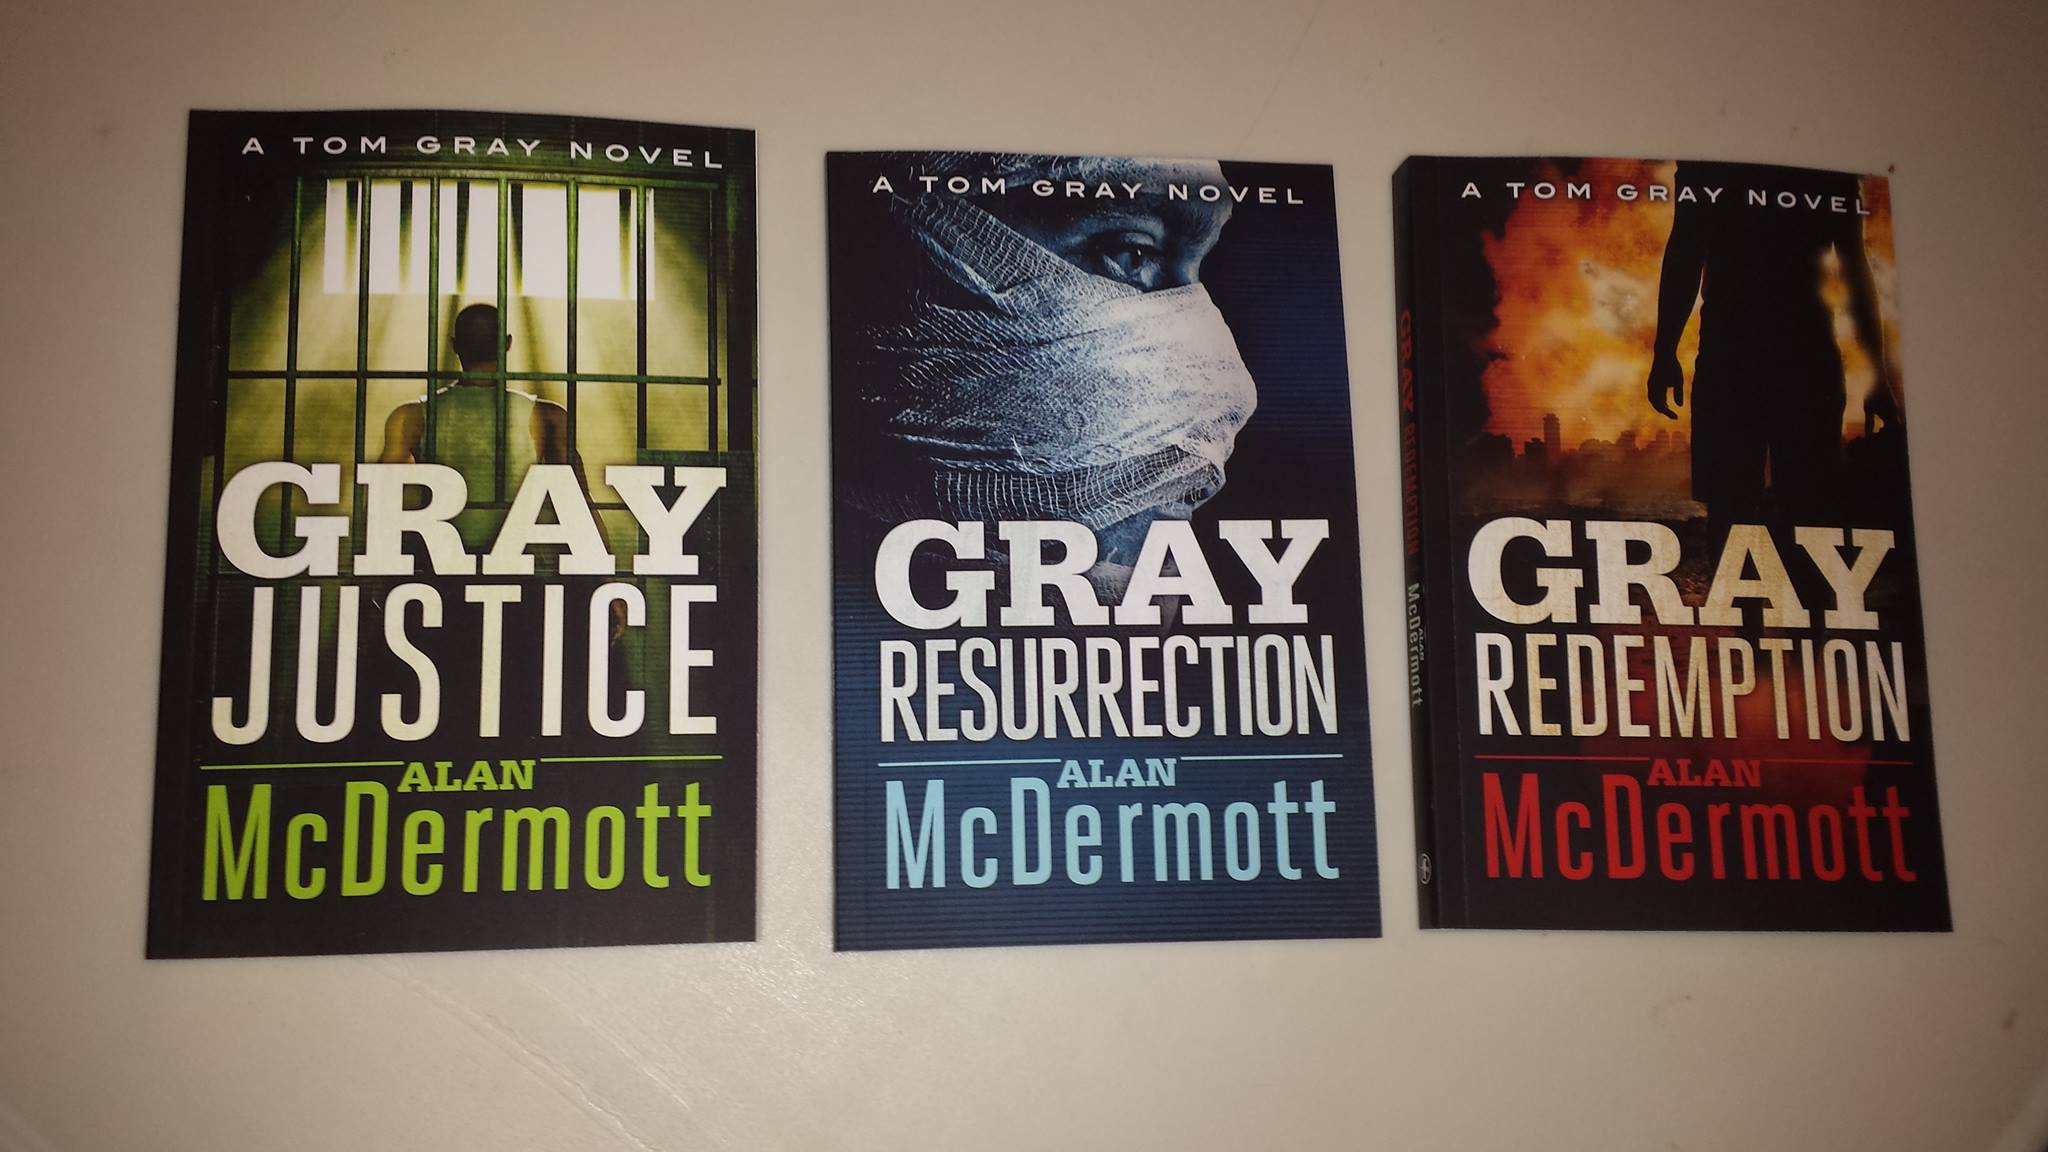 Alan McDermott books image.jpg